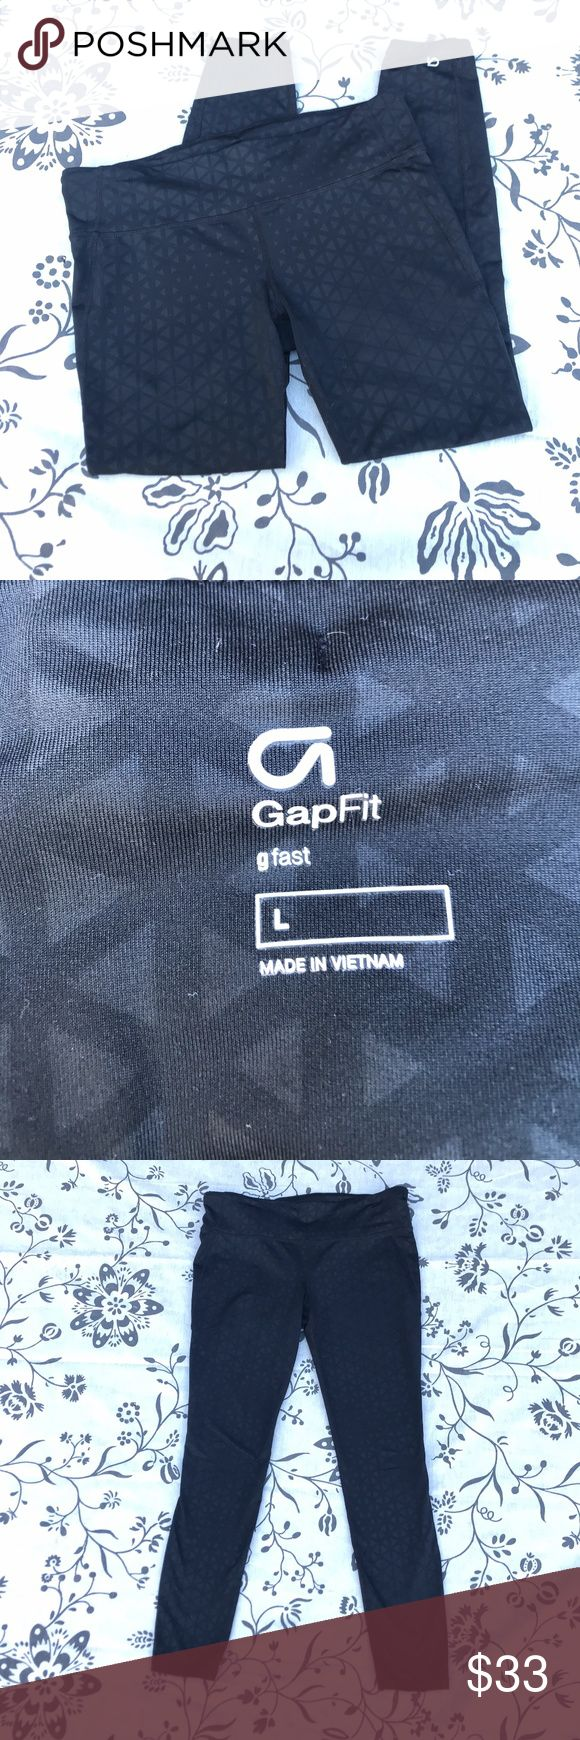 """NWOT Gap Fit Black printed Yoga pant Leggings Sz L I bought these, tore the tags off, put them on for about 20 min and they are just a little too big in the waist for me.  These are in perfect condition.  Nice high, thick waist band. These were hard to get on gap.com, they kept selling out.  Waist measures 16"""" across while lying flat. 26"""" inseam GAP Pants Leggings"""